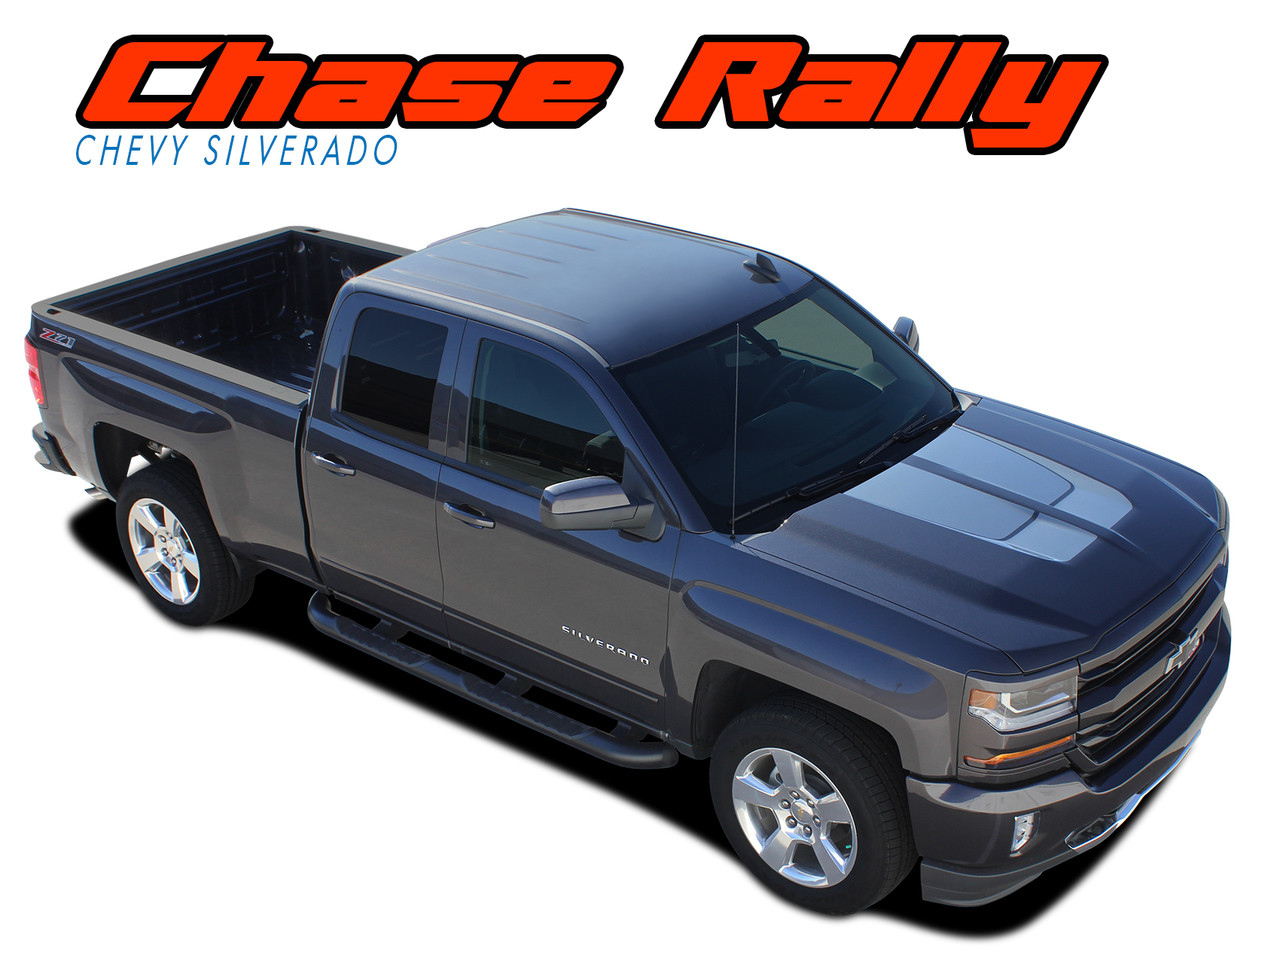 chase rally 2016 2017 2018 chevy silverado rally edition style hood tailgate vinyl graphic decal racing stripe kit vgp 3941  [ 1280 x 966 Pixel ]